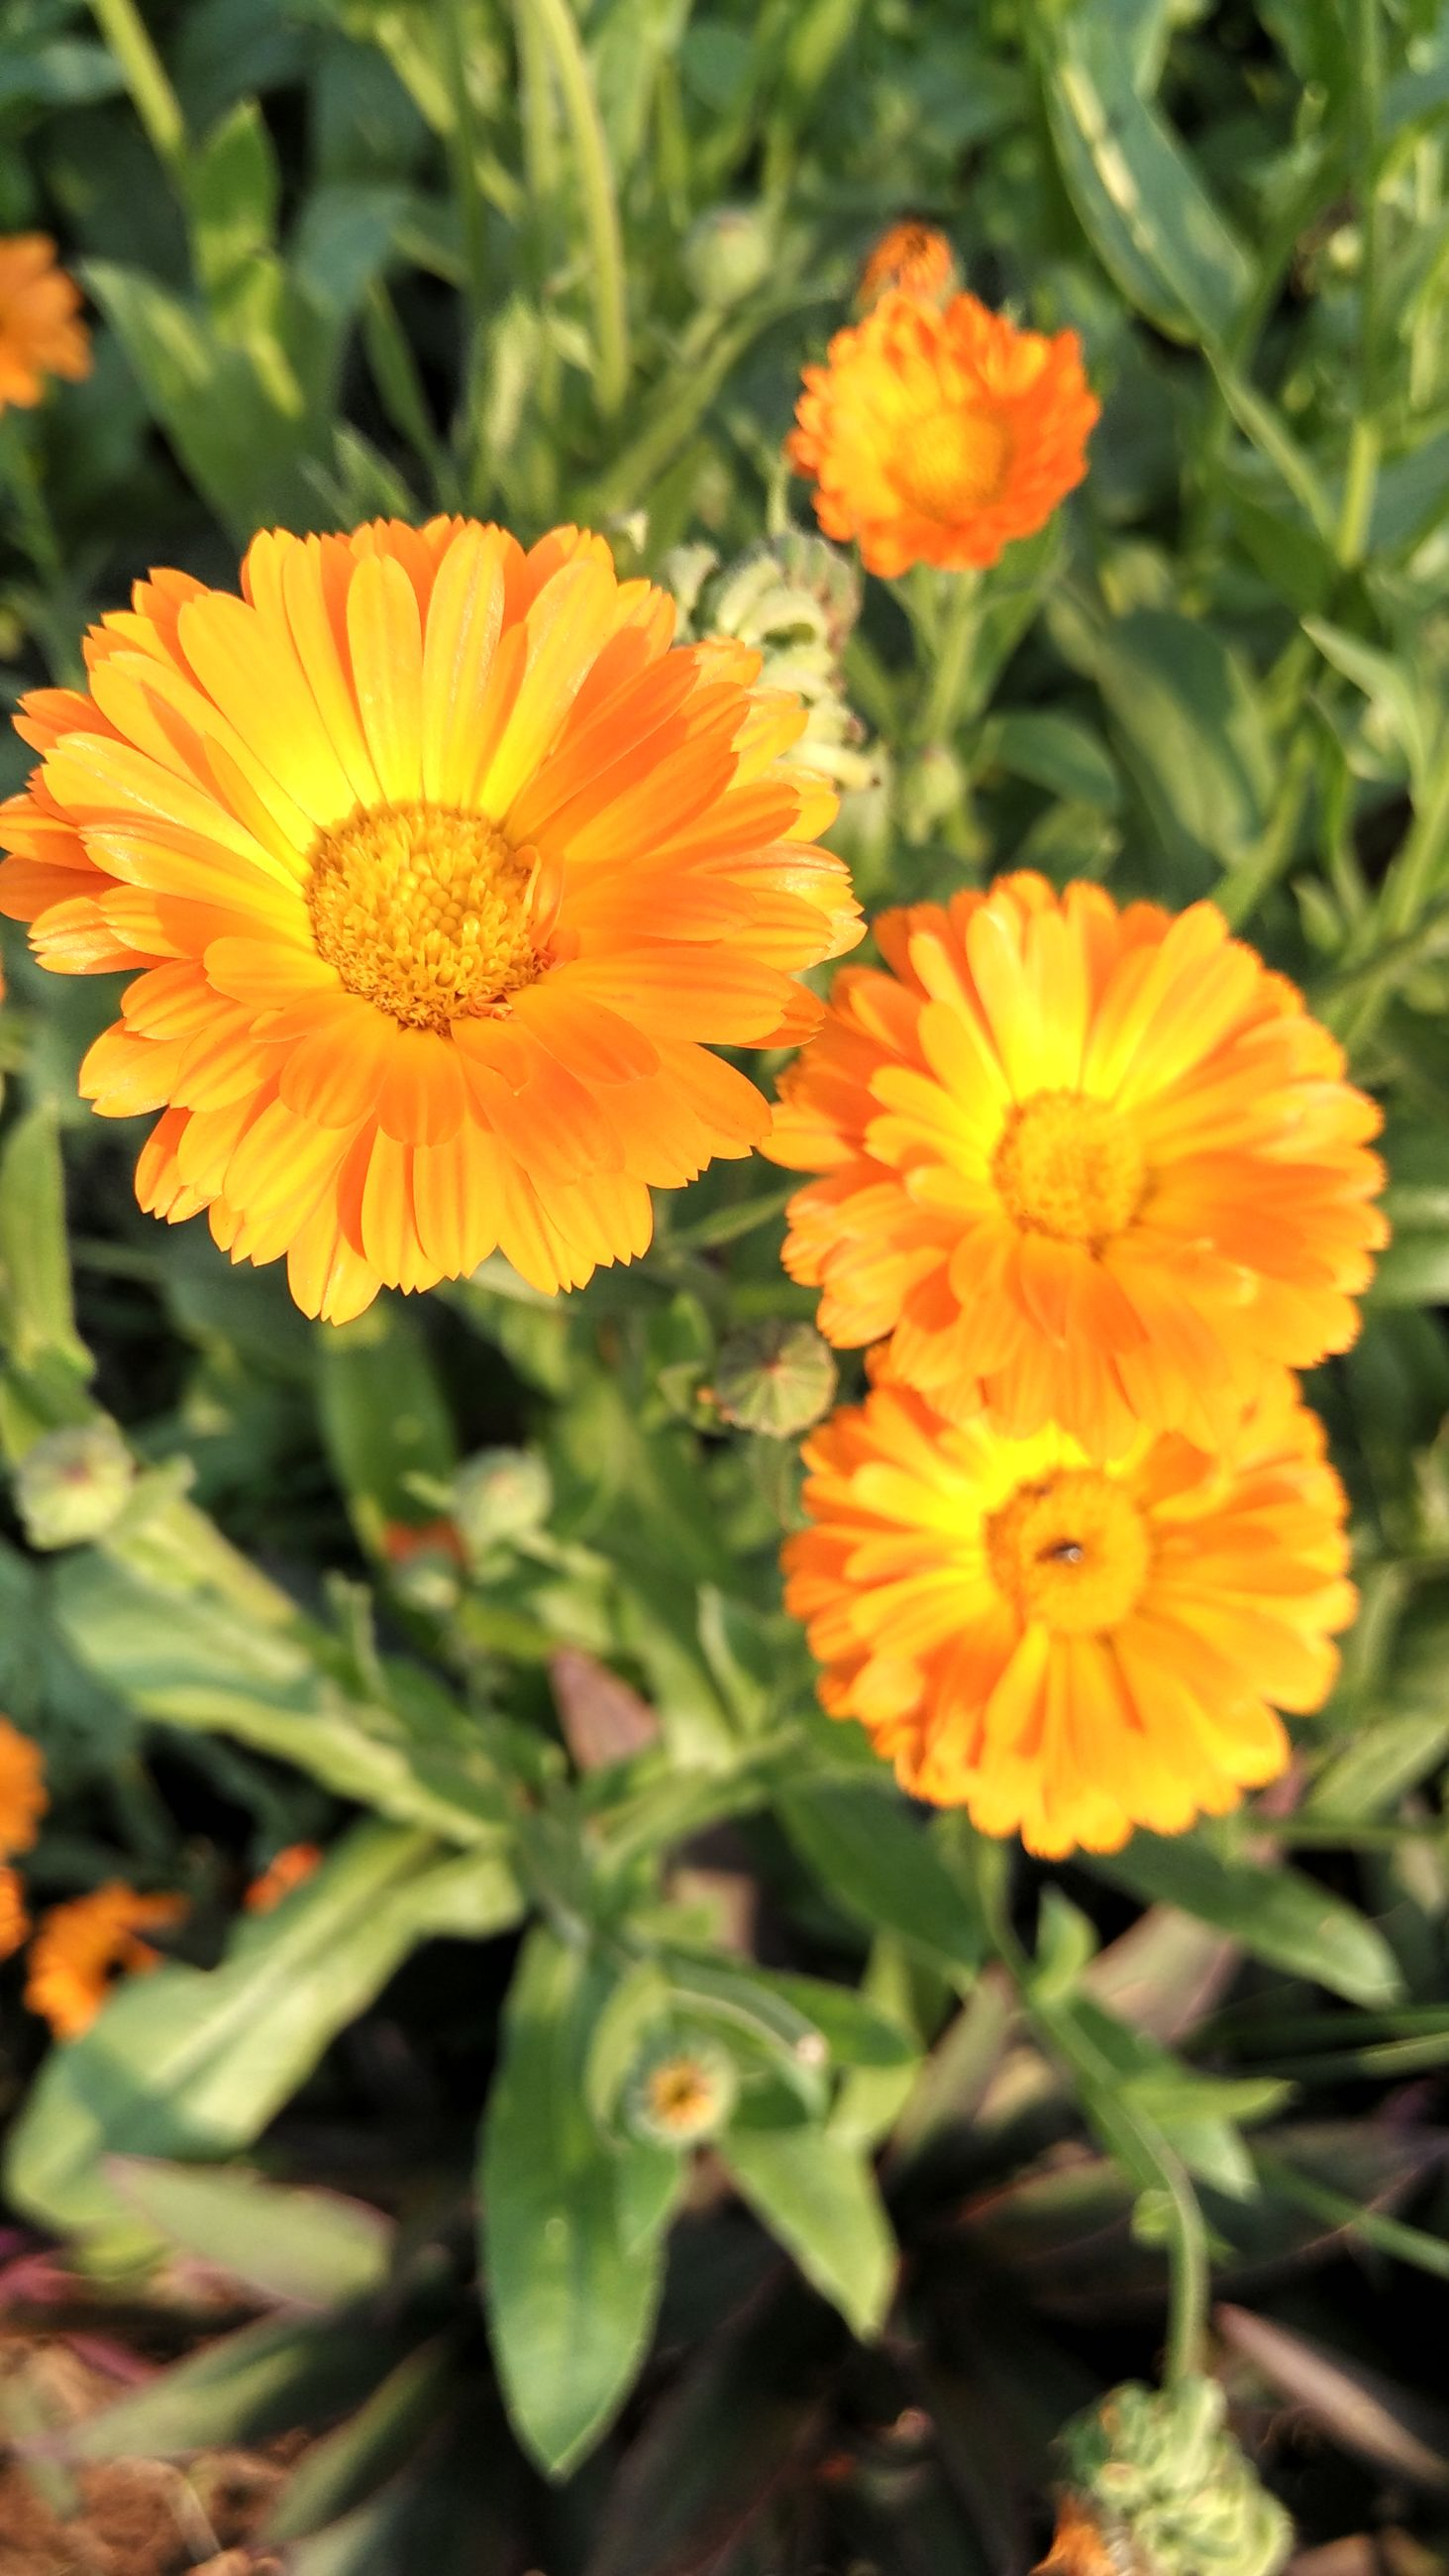 flower, petal, freshness, fragility, flower head, growth, orange color, beauty in nature, blooming, plant, nature, close-up, focus on foreground, yellow, high angle view, in bloom, red, pollen, field, no people